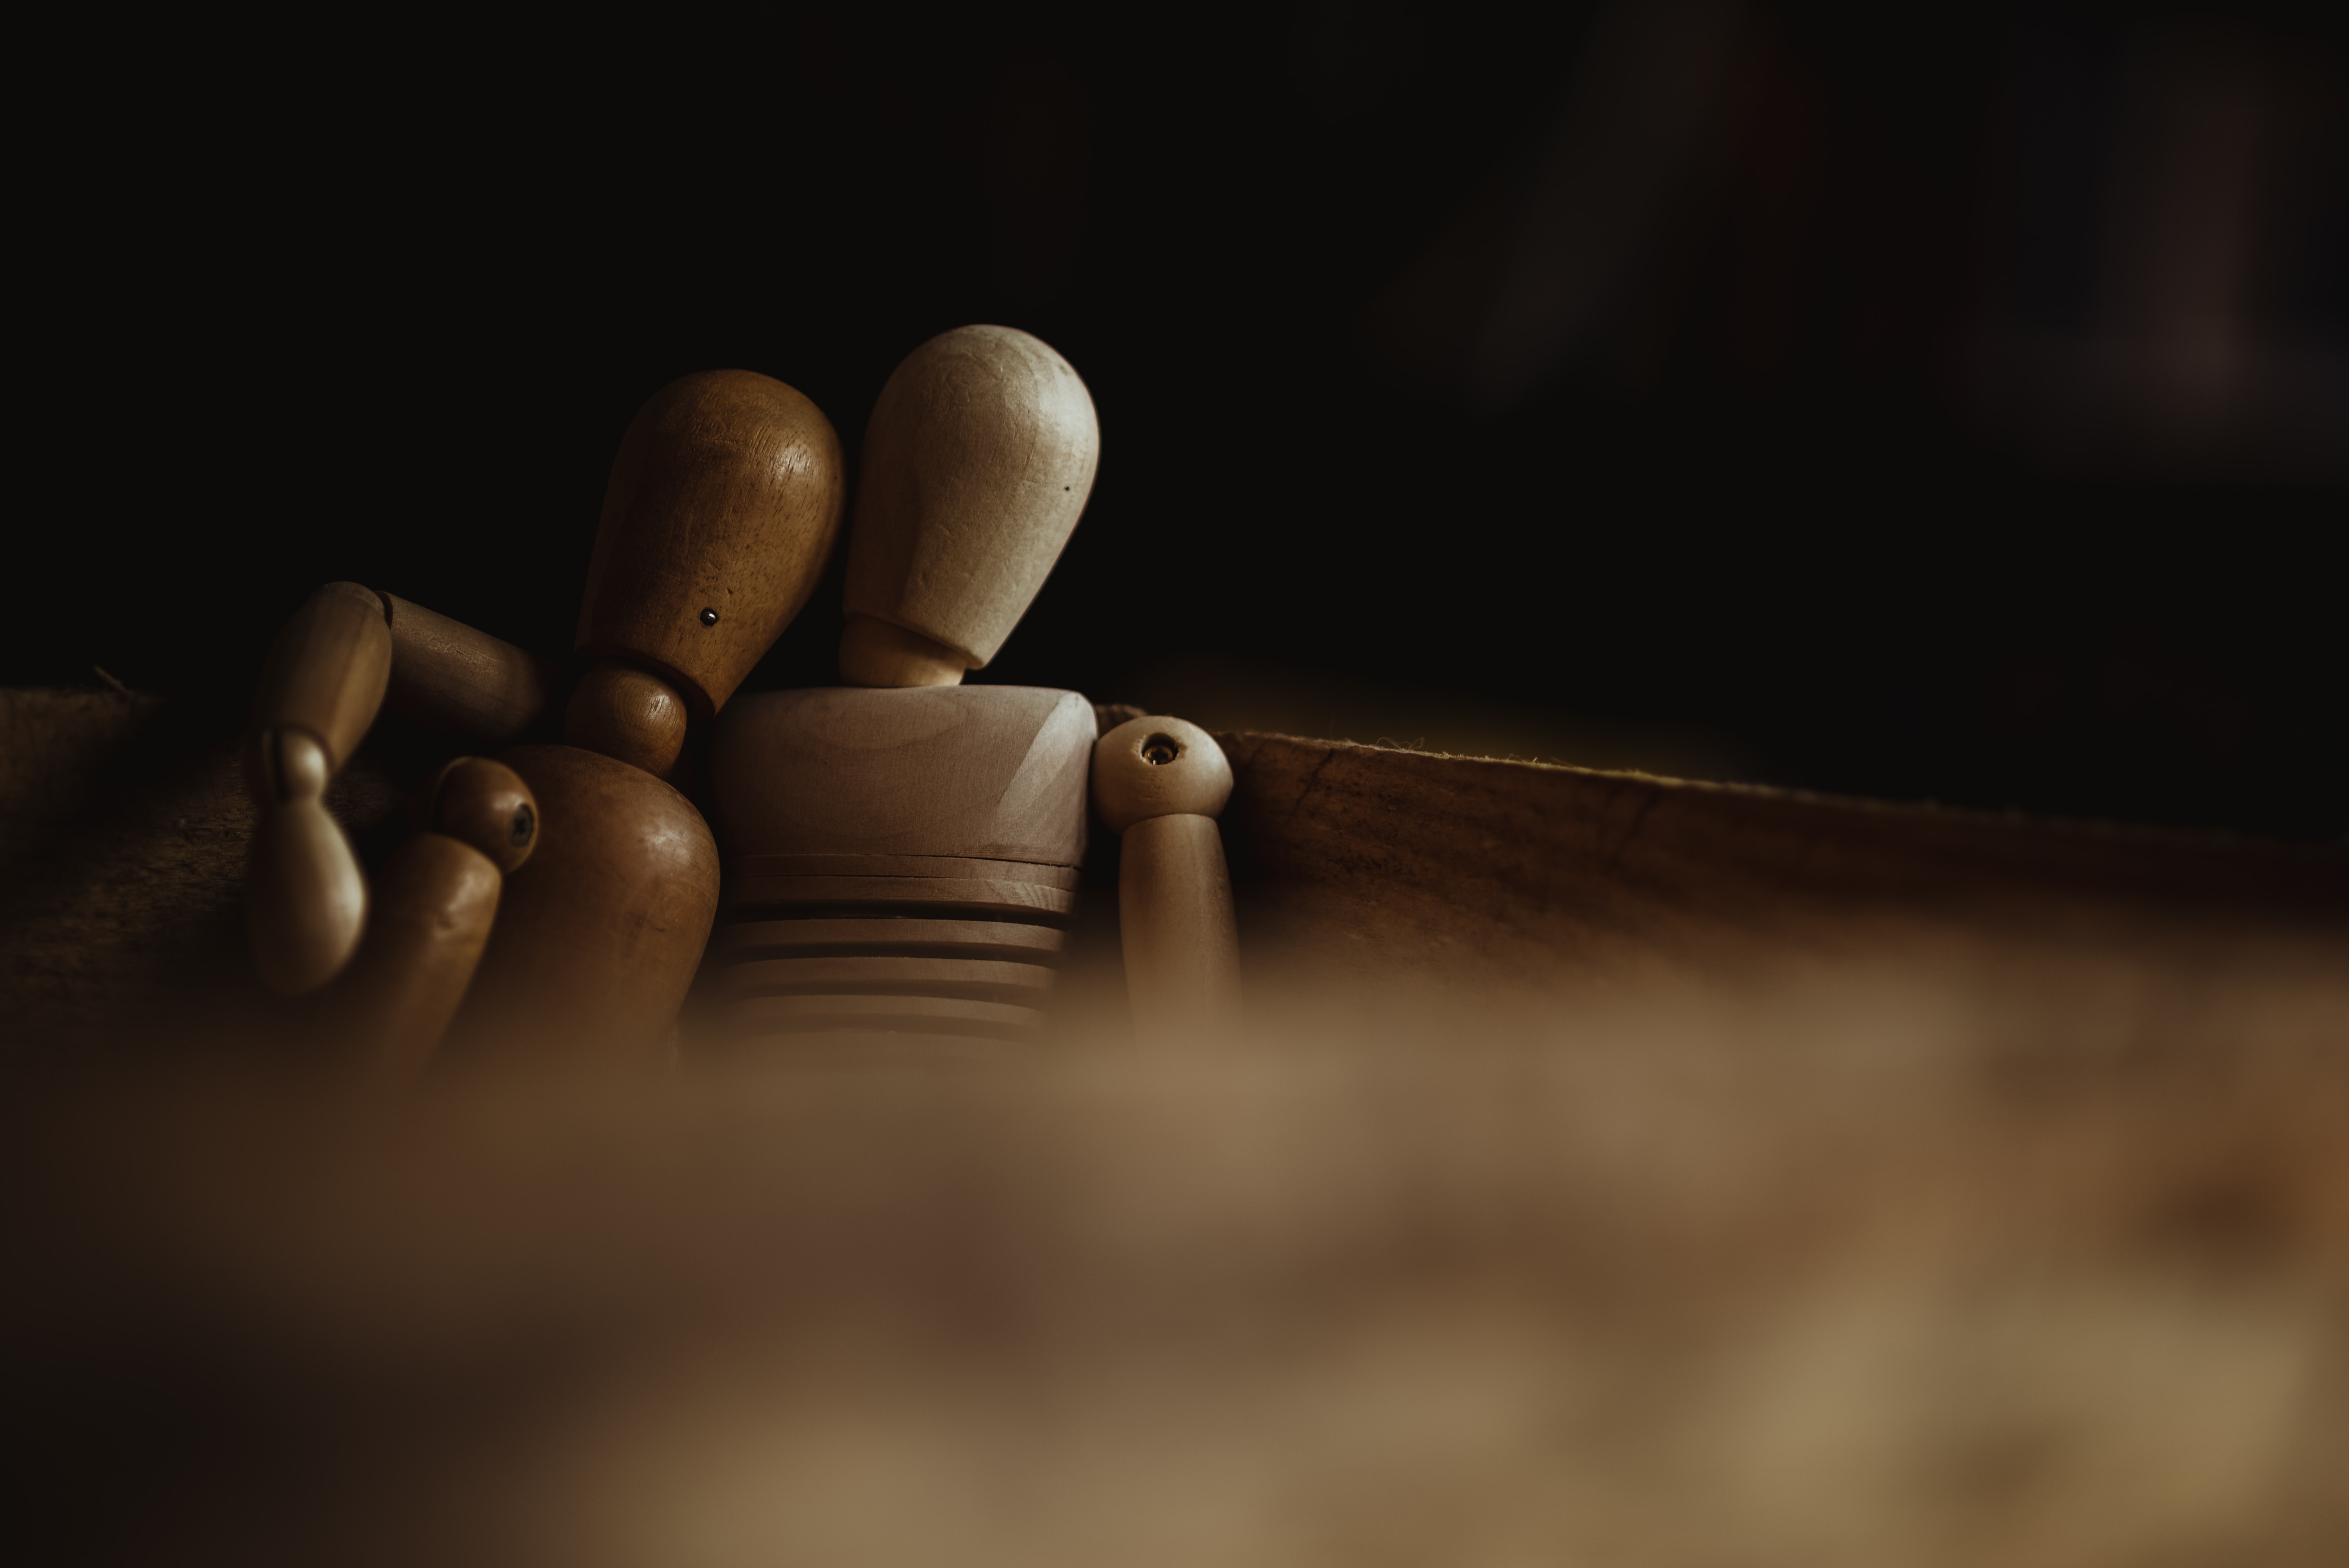 close-up photo of two wooden mannequins sitting on bench